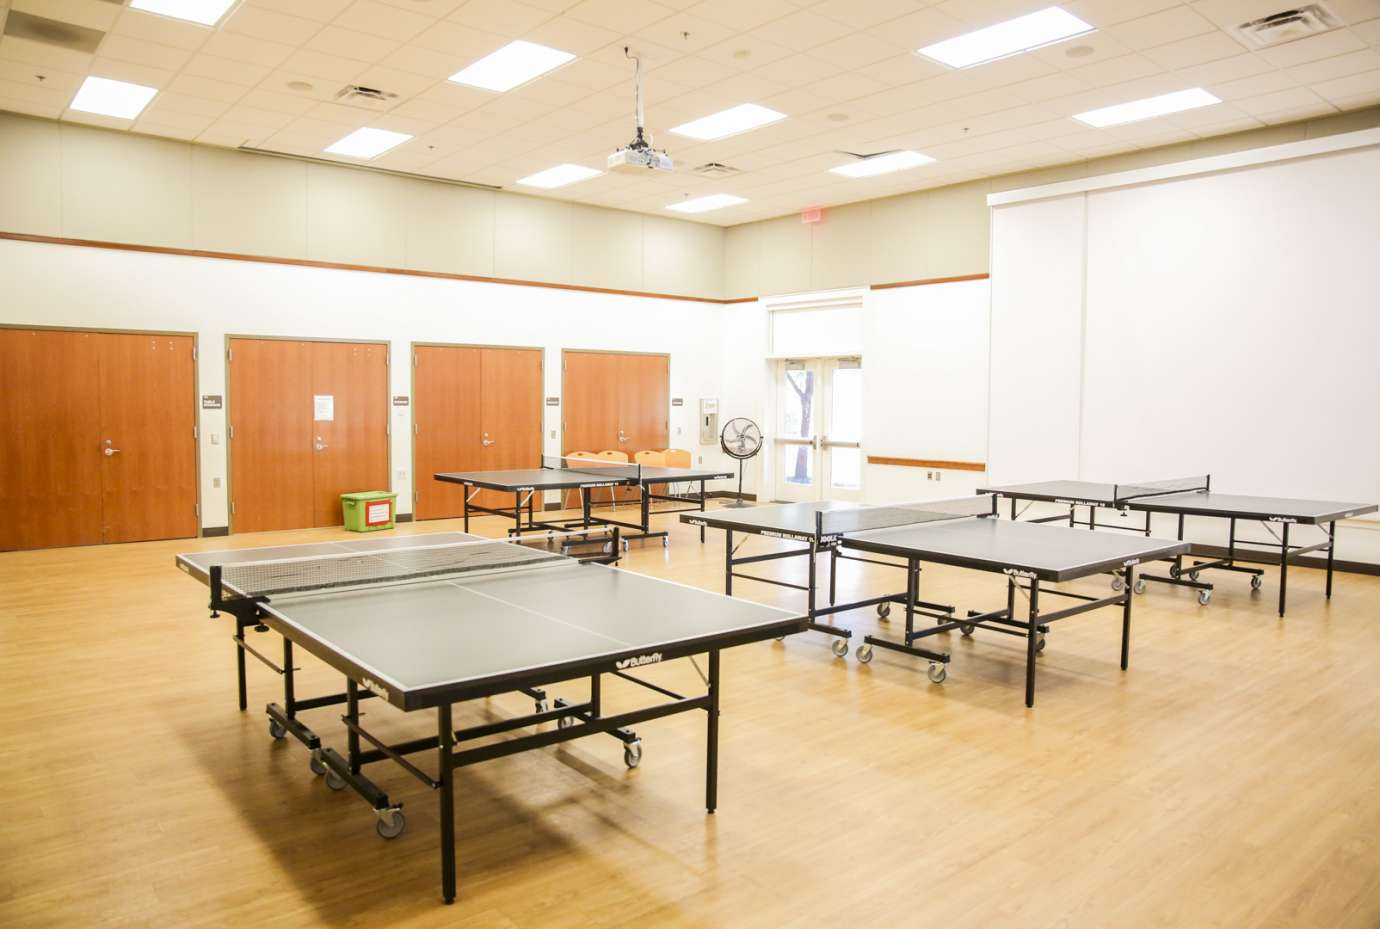 A large open room used for fitness classes, pickleball and table tennis